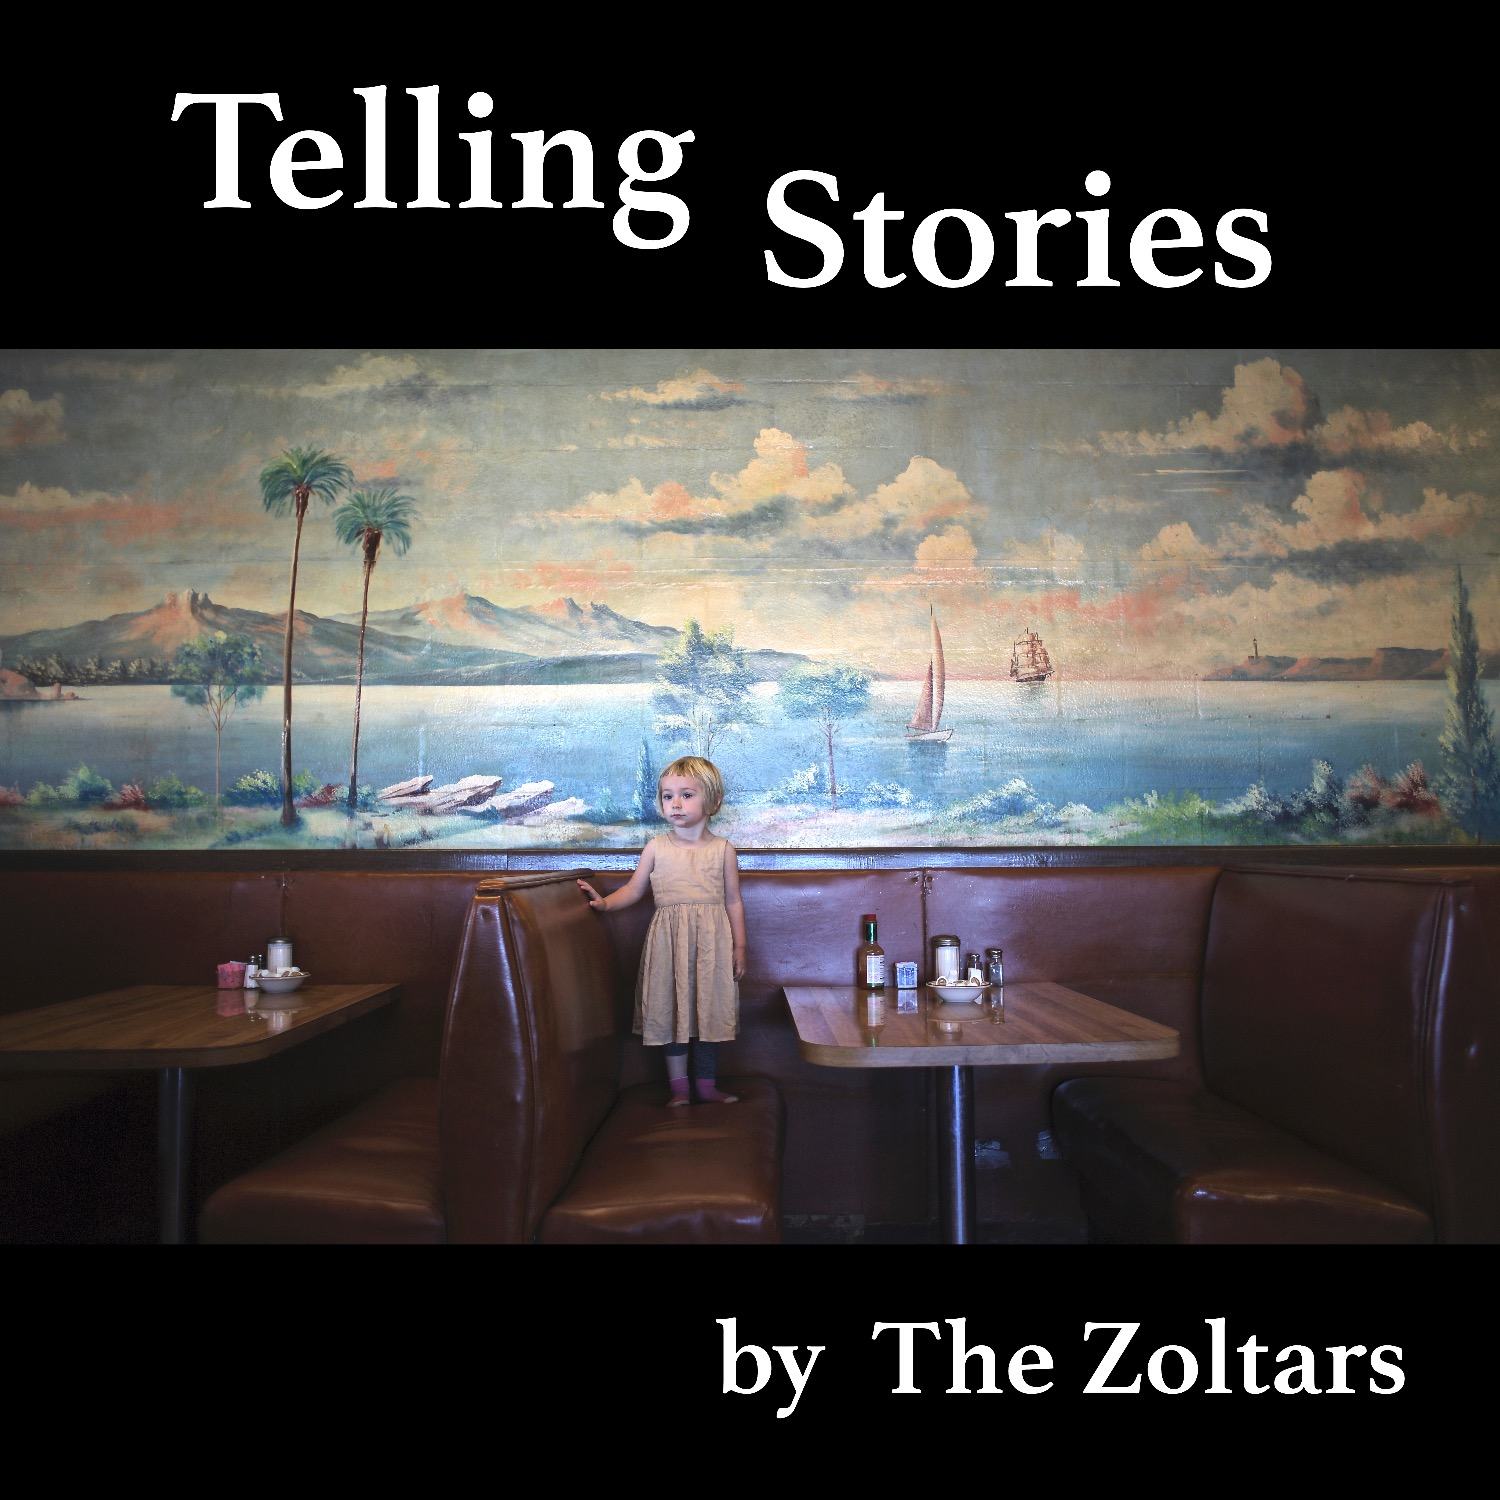 Telling Stories FRONTsmall.jpg